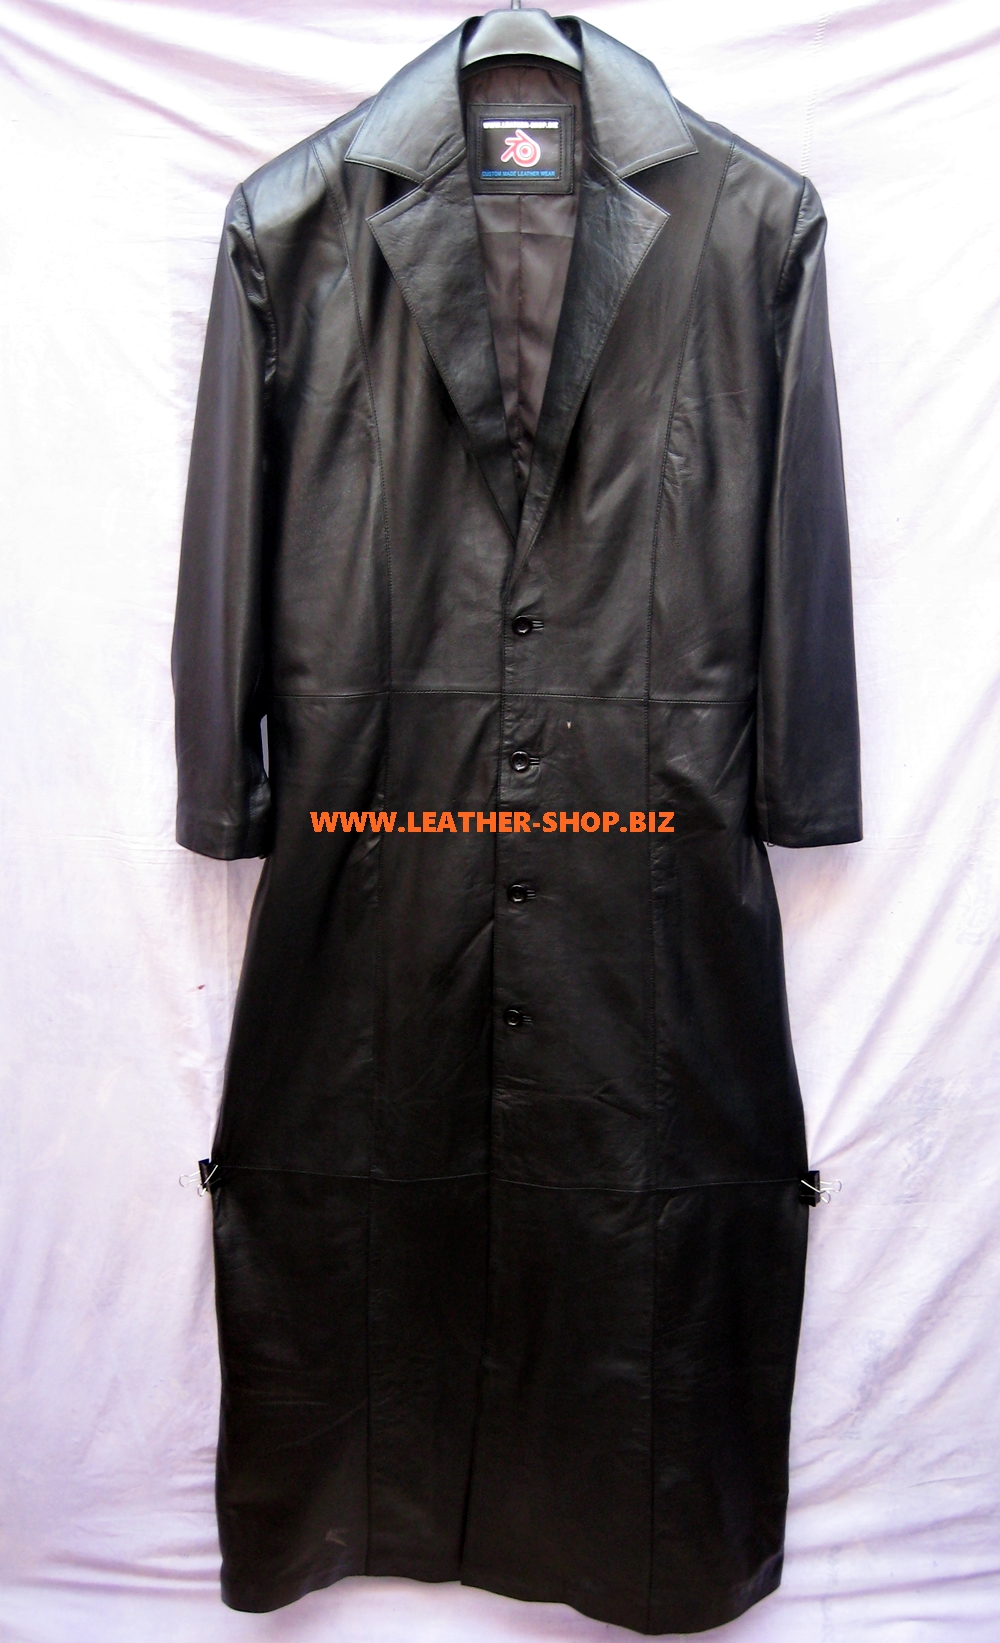 leather-trench-coat-undertaker-style-mtc666-www.leather-shop.biz-front-pic.jpg